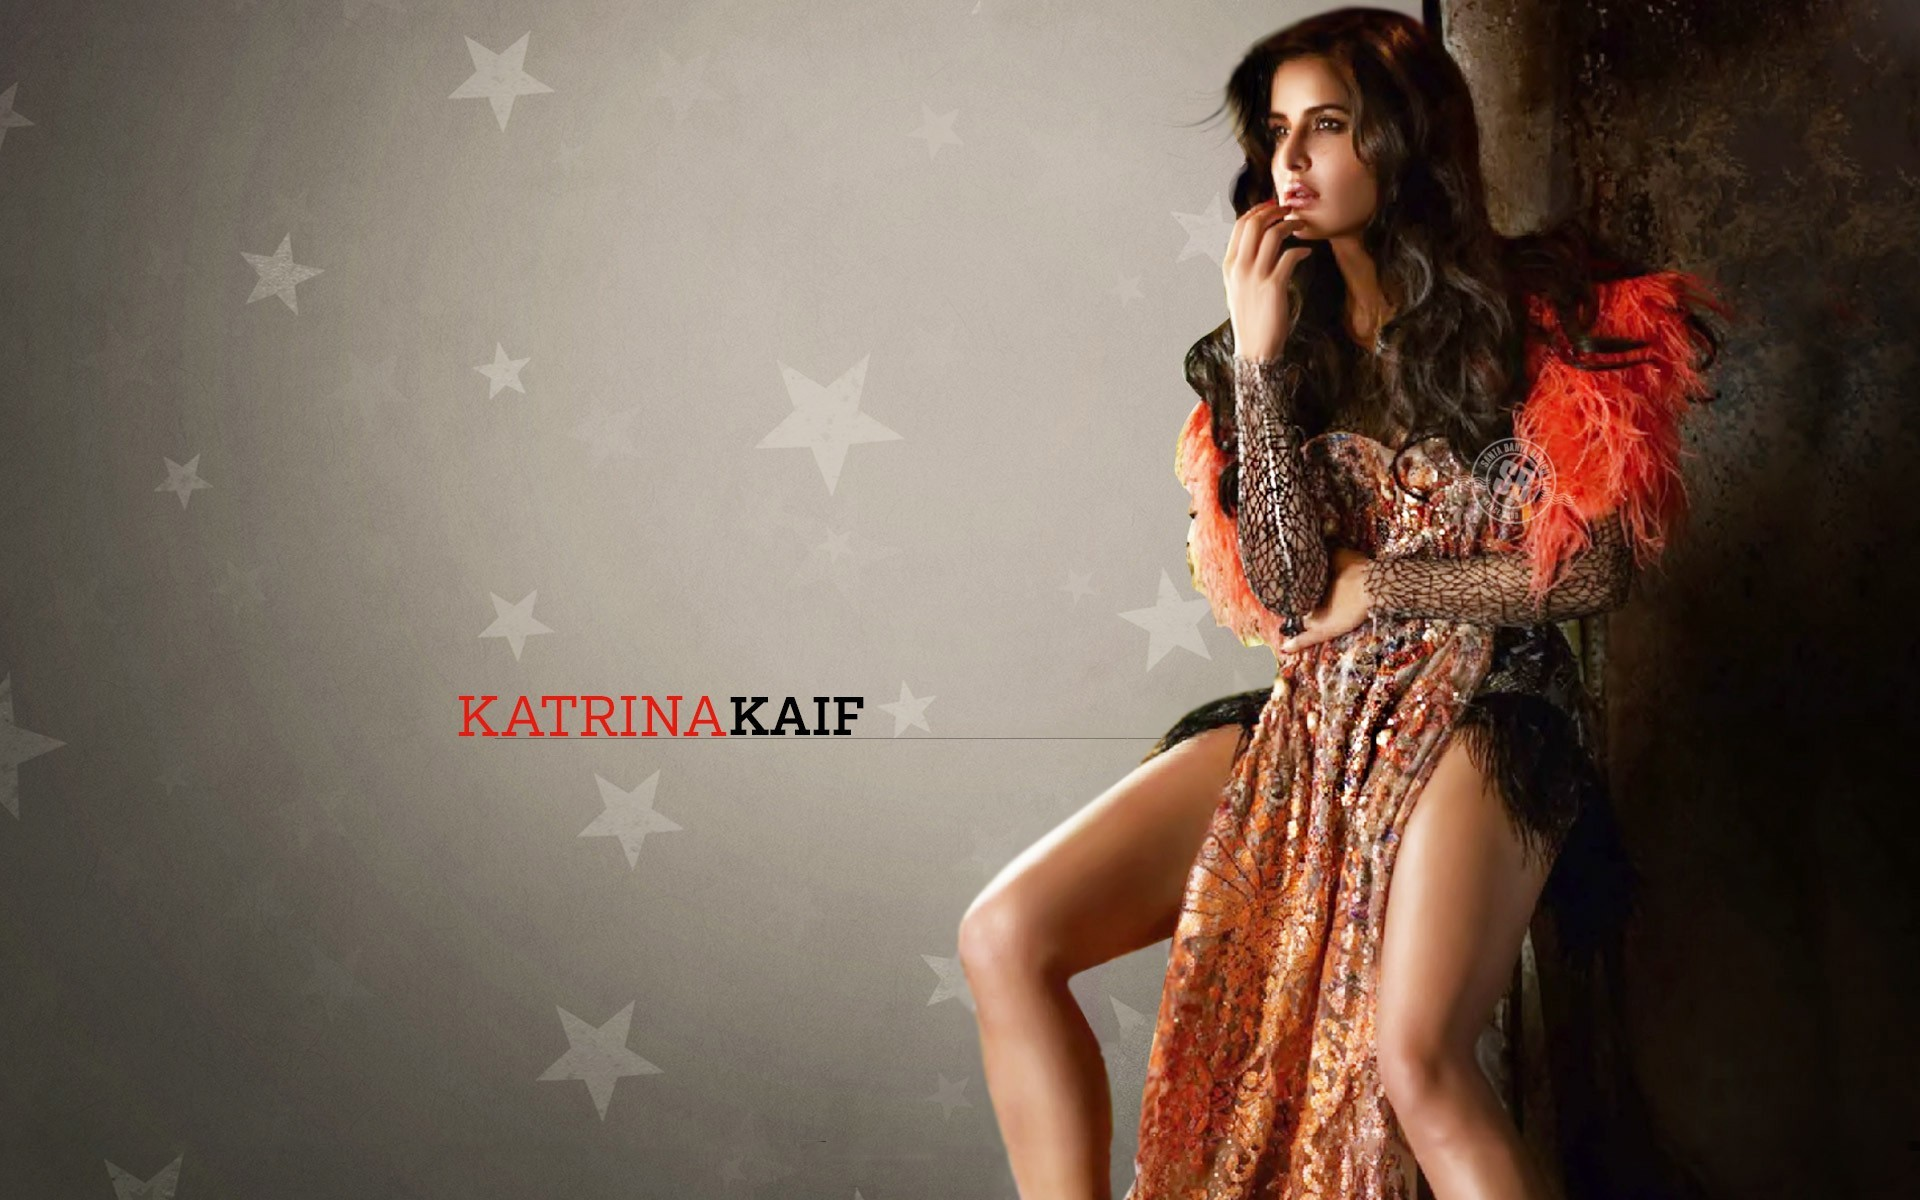 katrina kaif hd wallpapers 1080p 2018 61 images